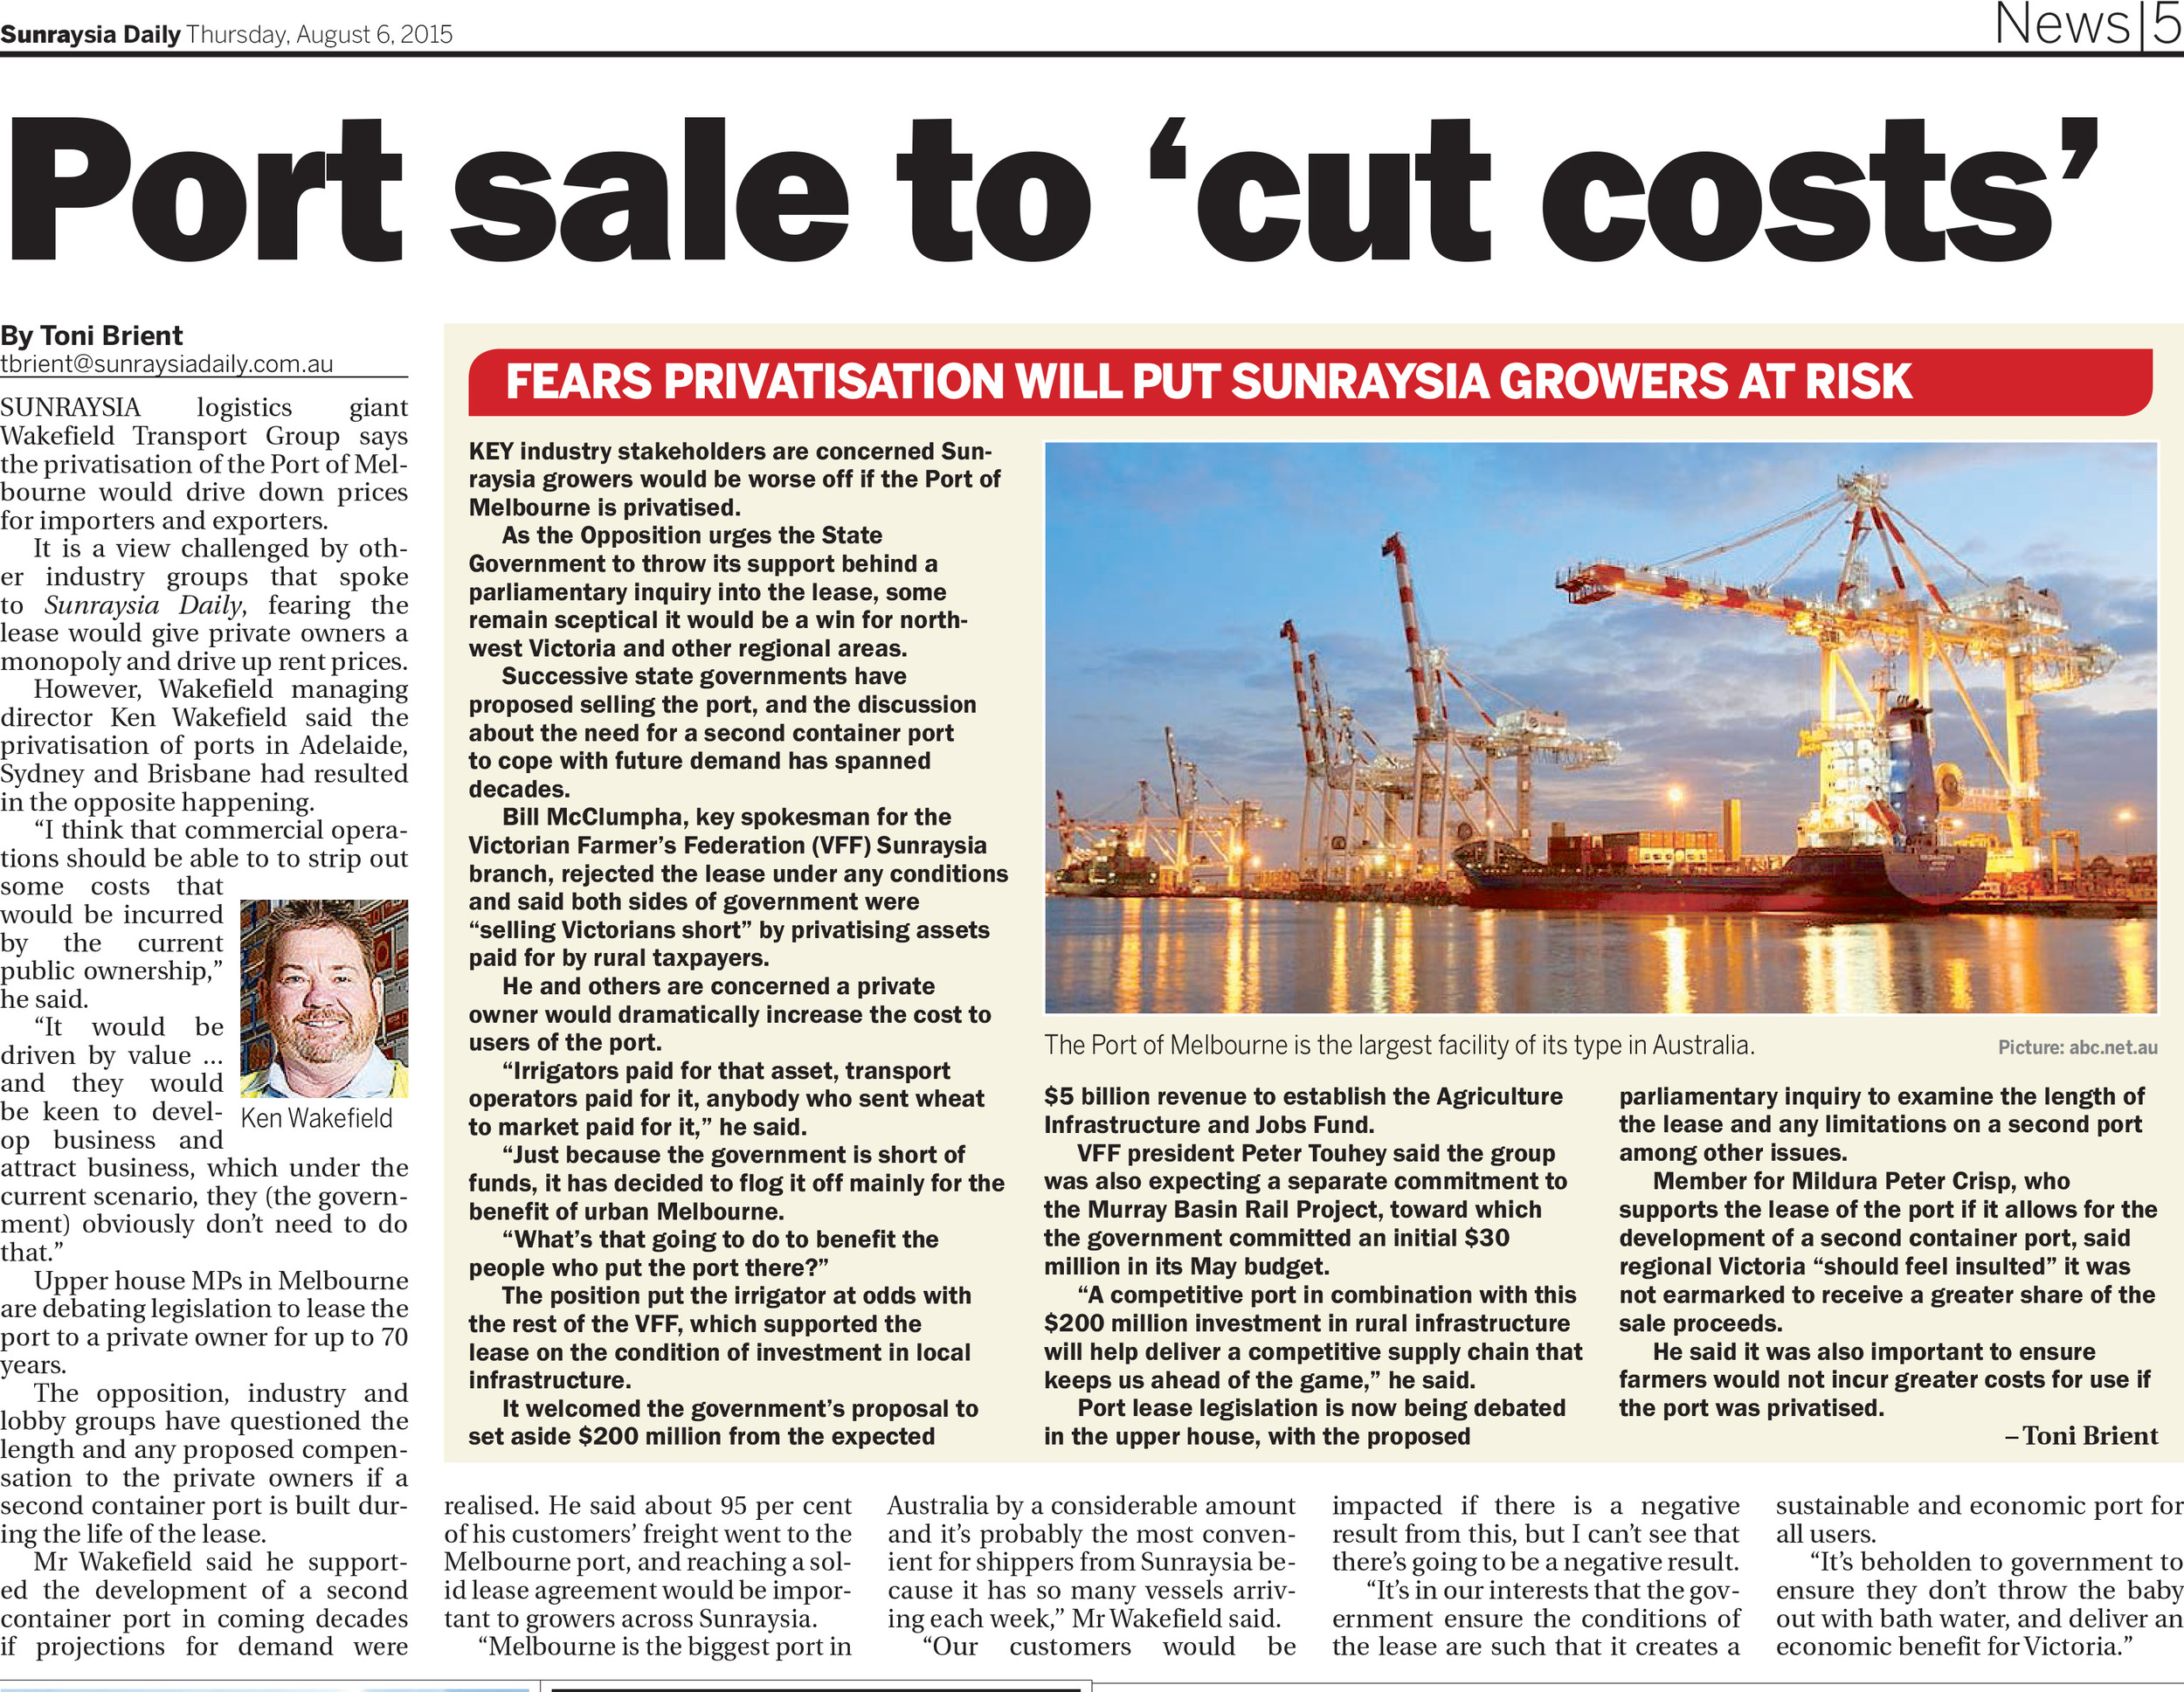 Port sale to 'cut costs' , Sunraysia Daily, August 6, 2015.